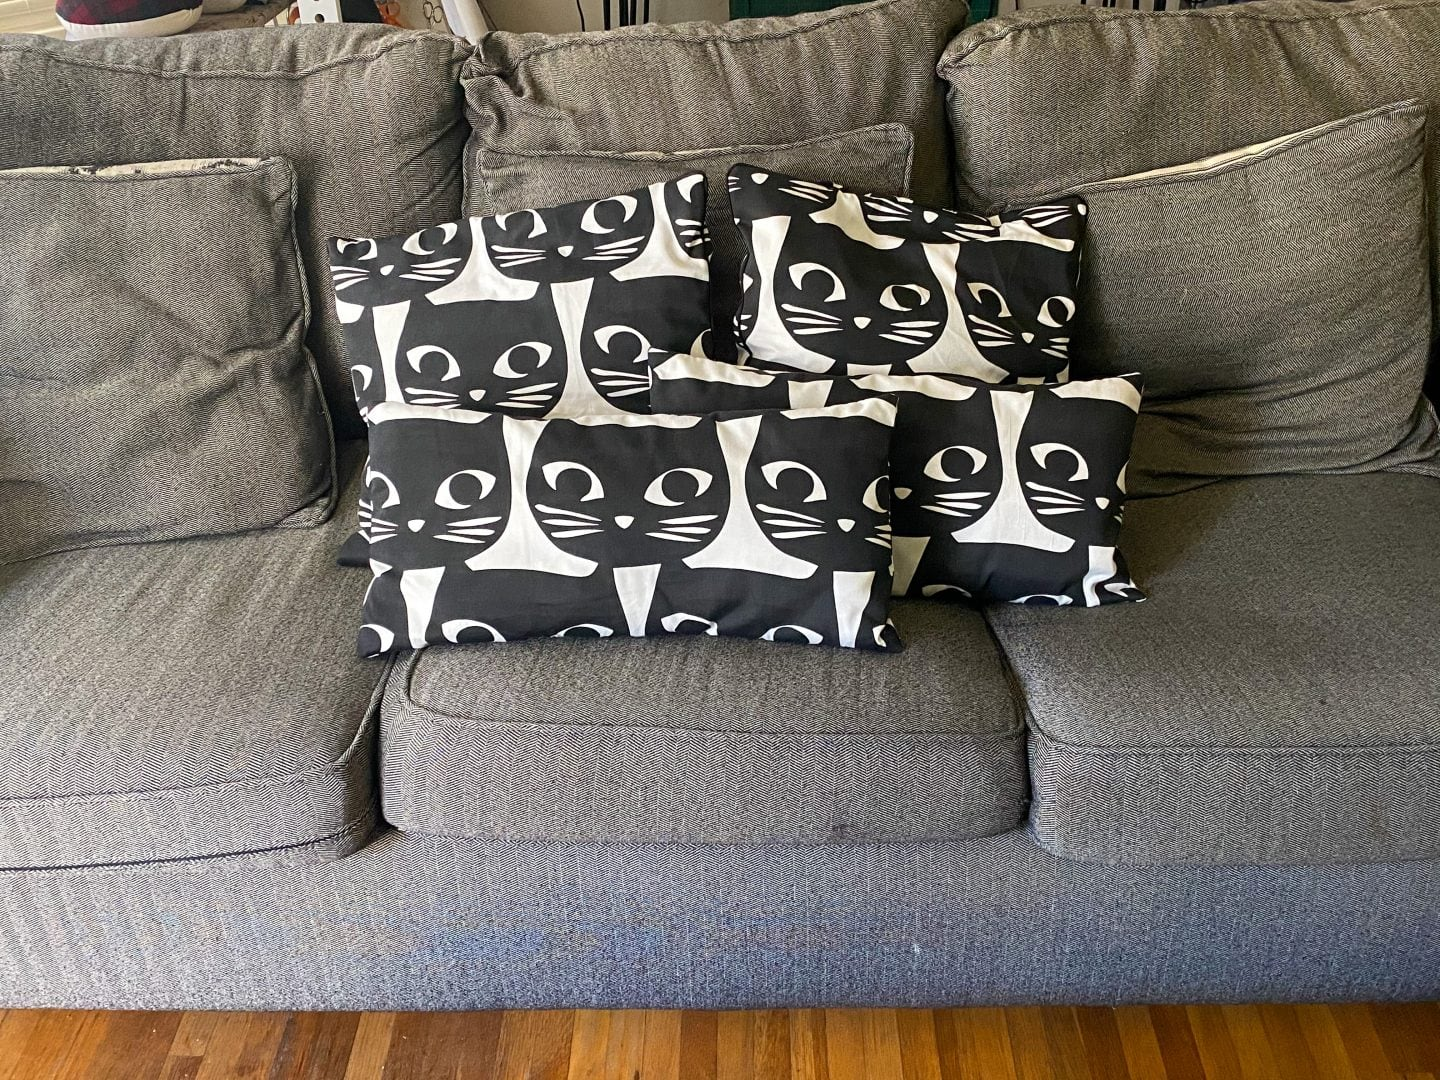 Image of gray couch with gray and cat pillows on it